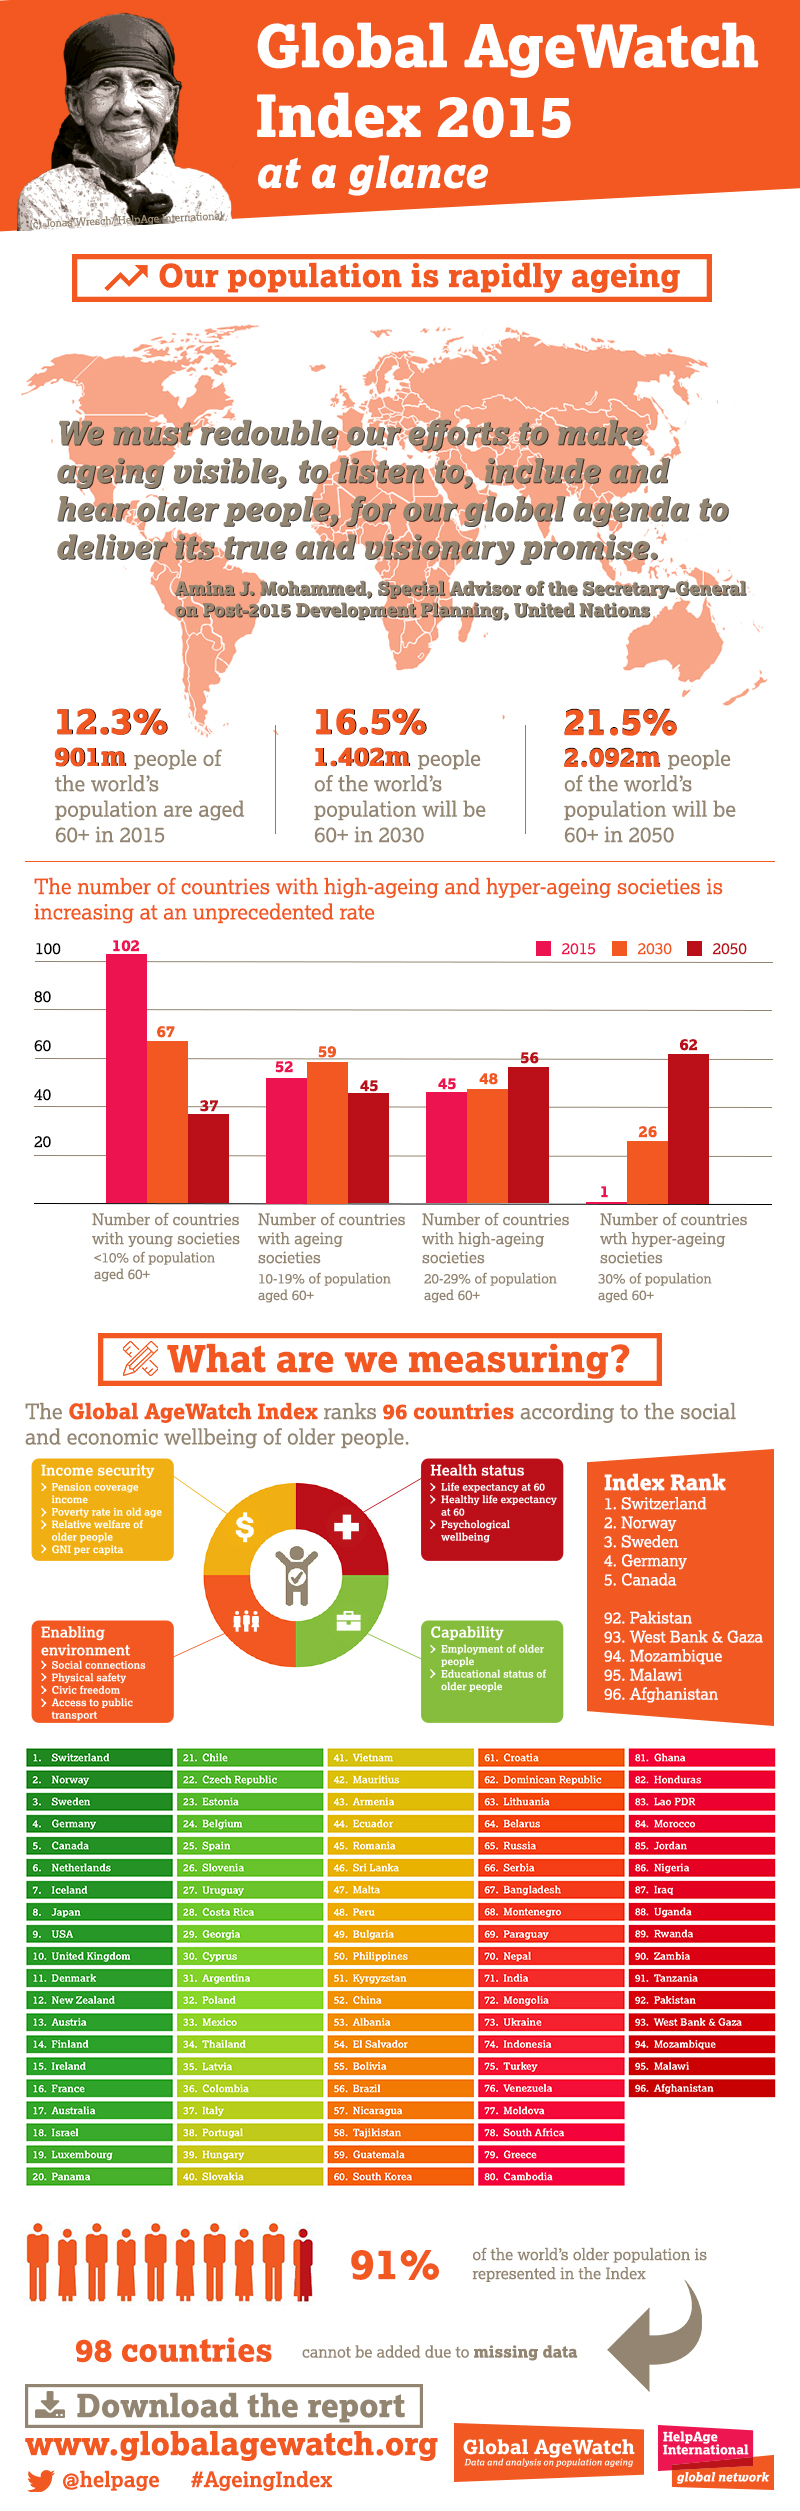 Global AgeWatch Index 2015 at a glance infographic